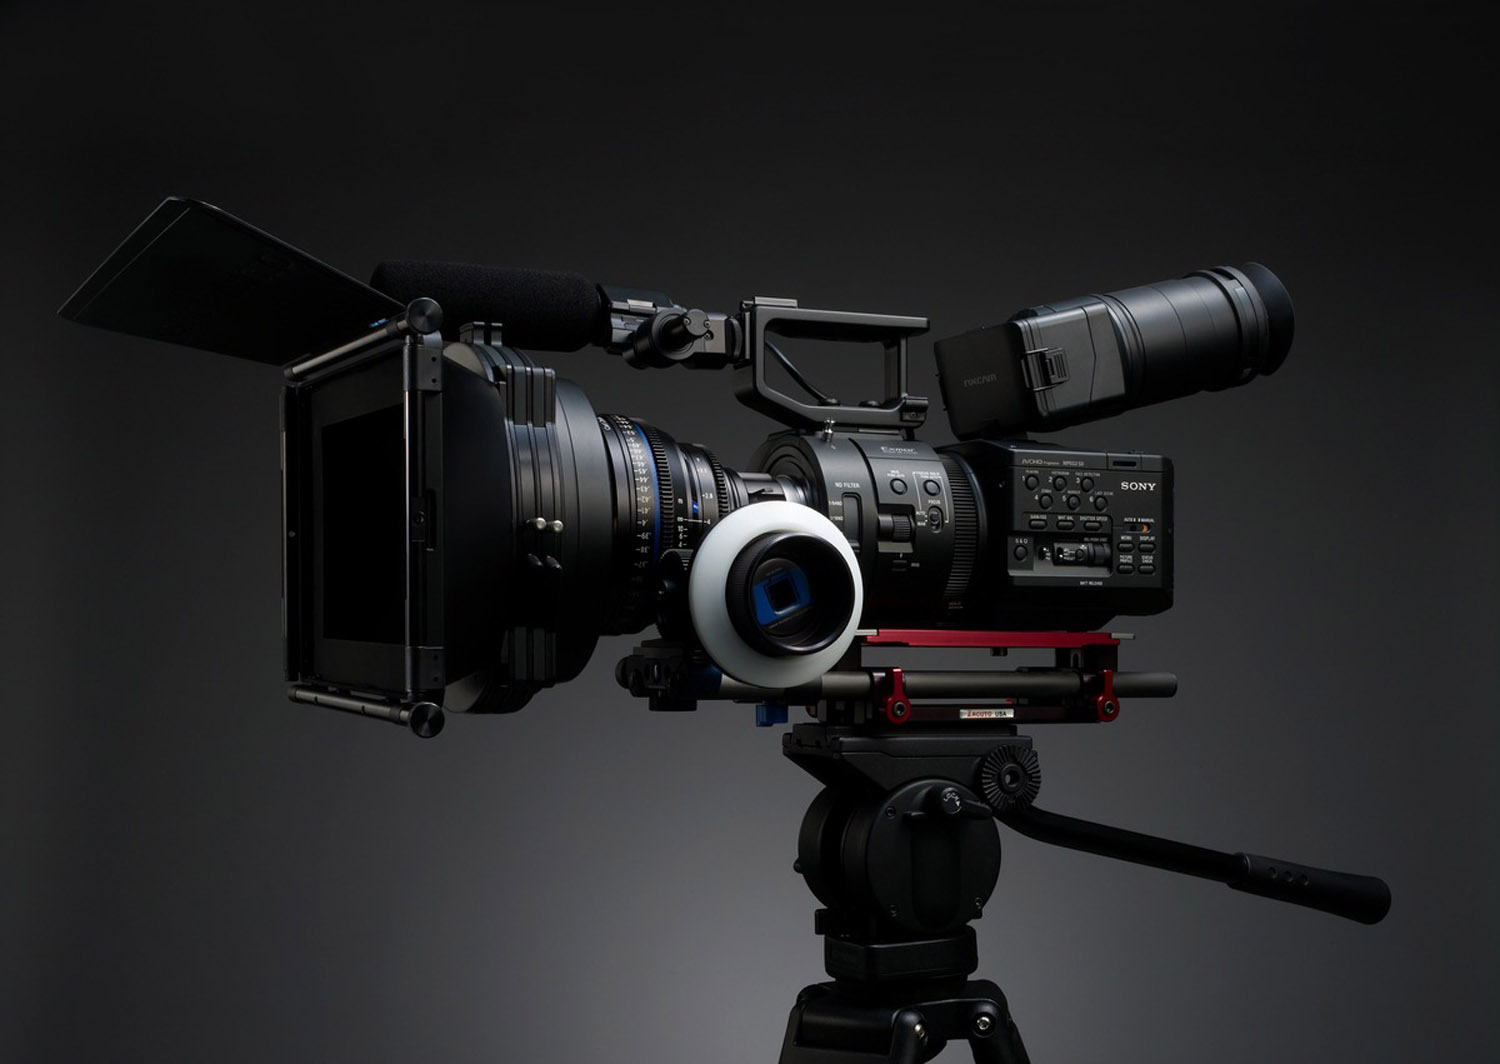 SONY FS-700U Super 35 mm